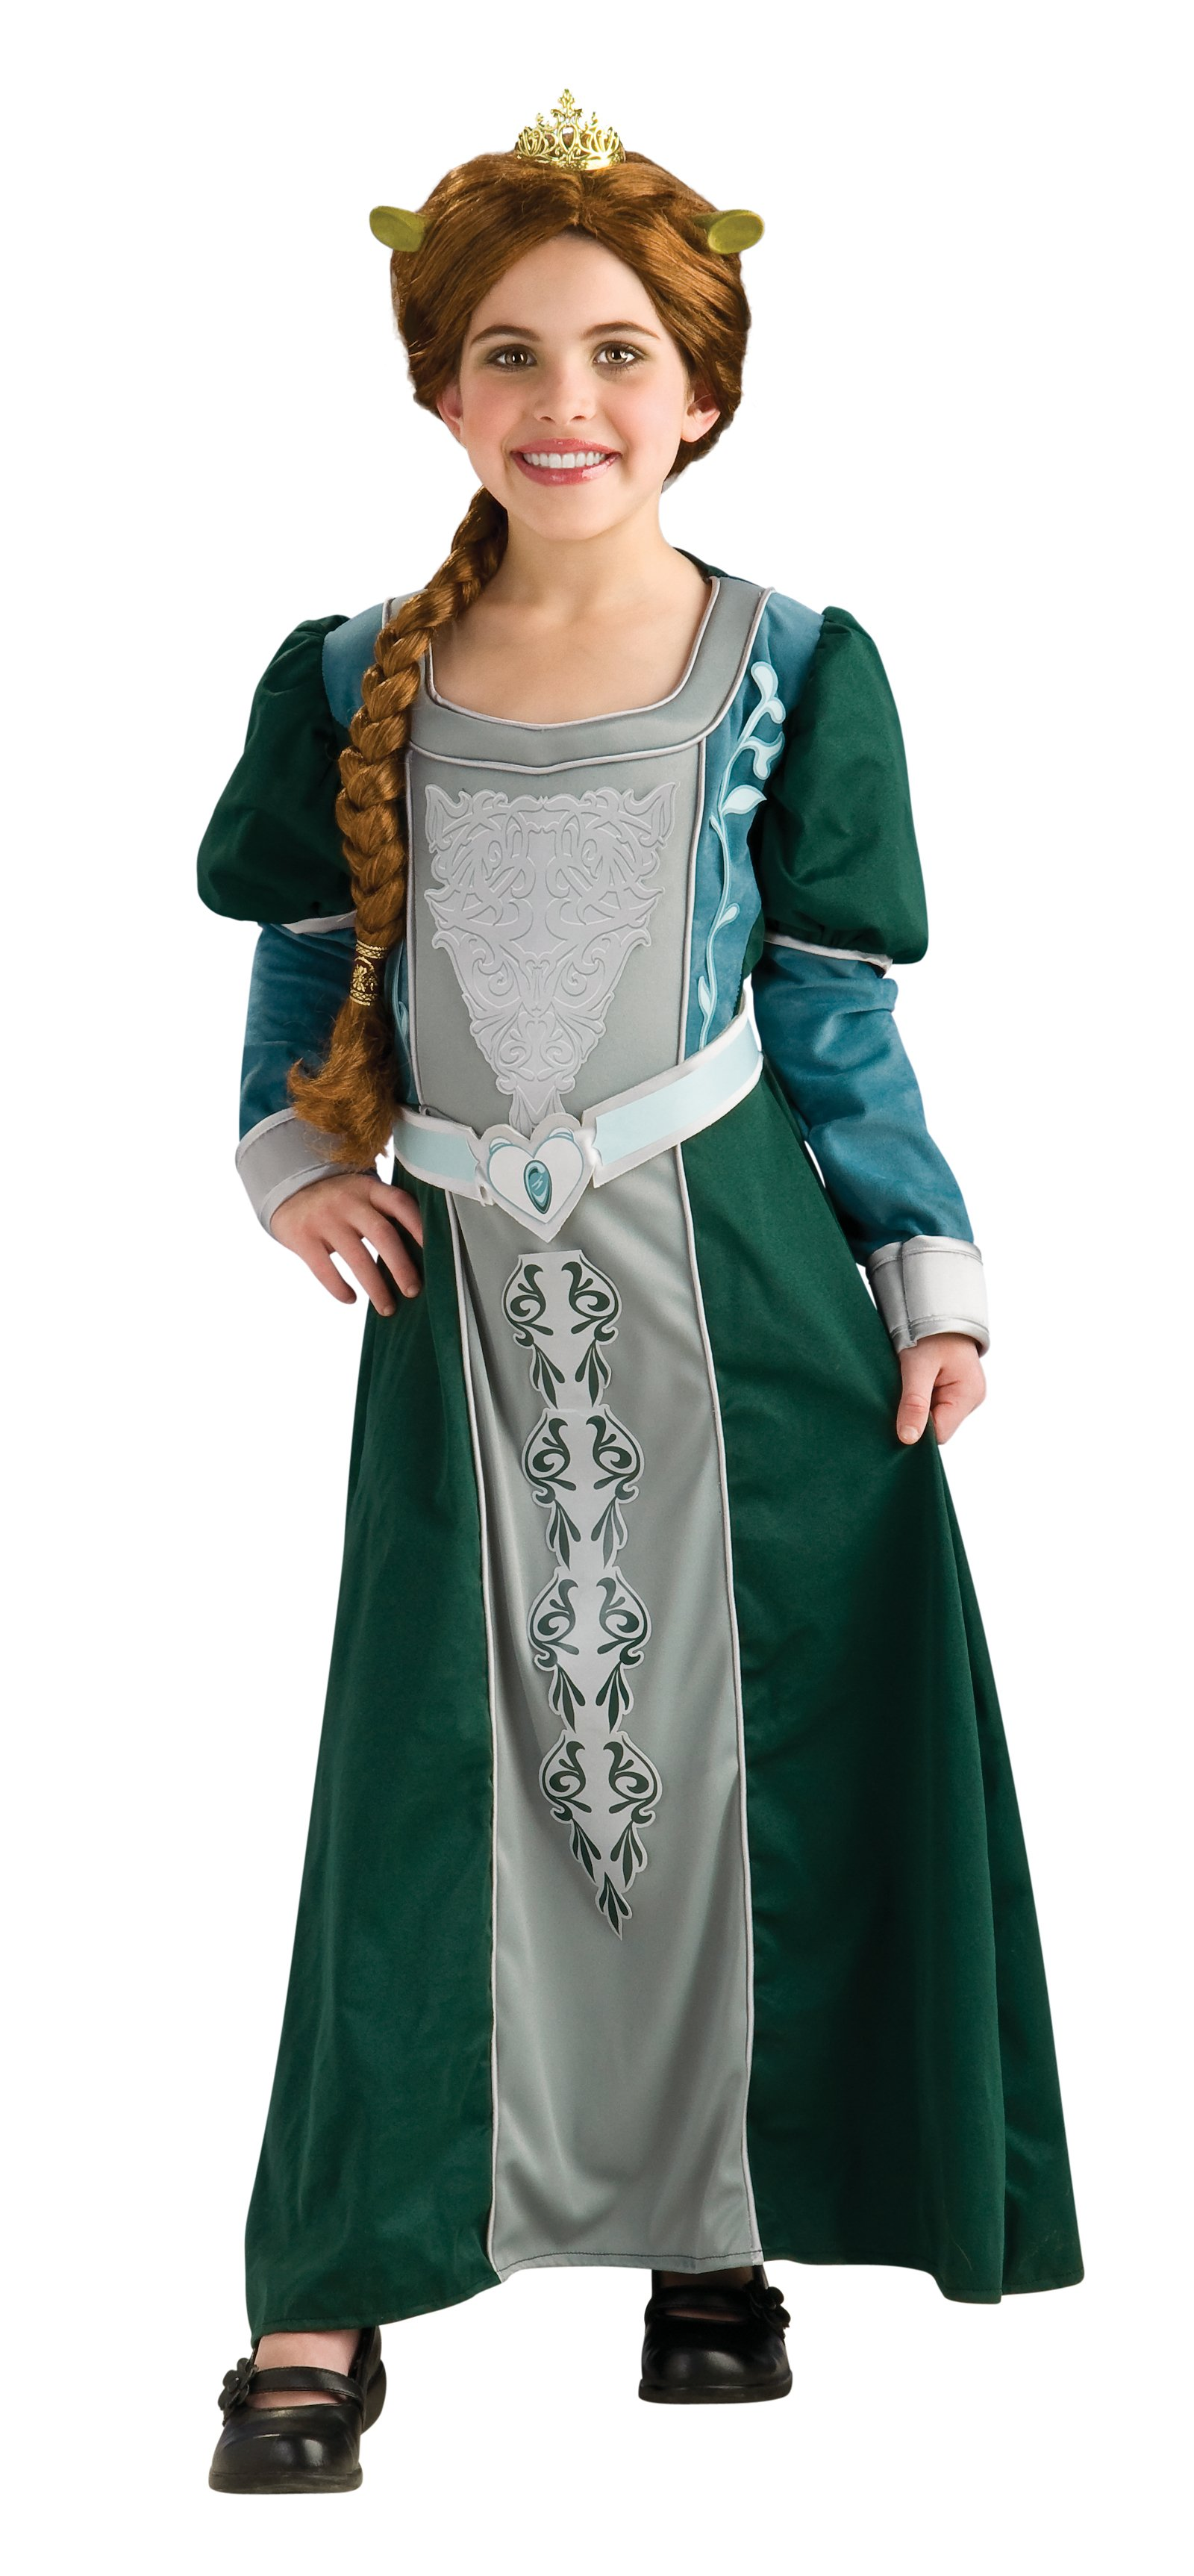 Shrek Forever After - Deluxe Fiona Toddler/Child Costume